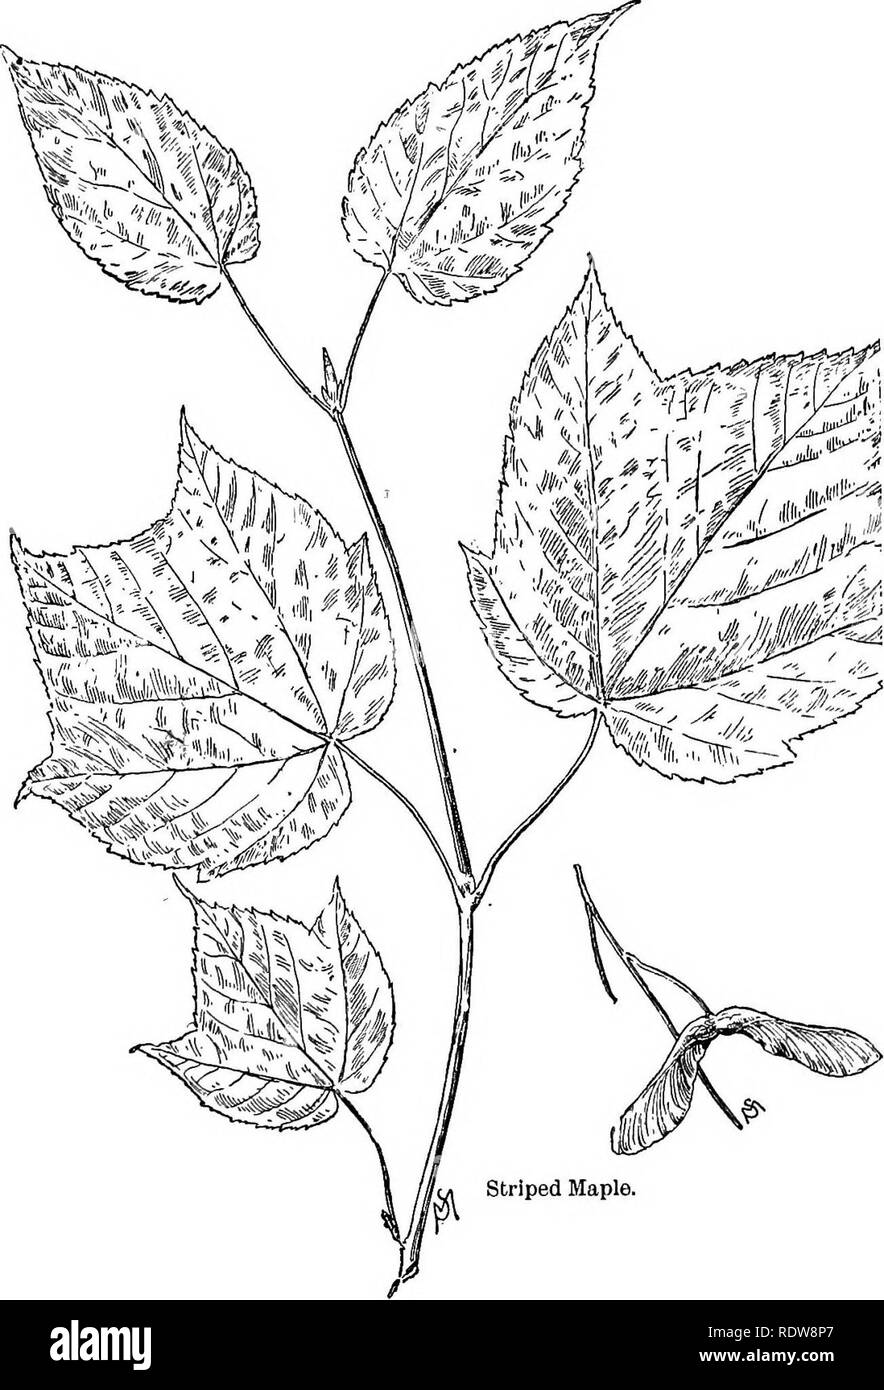 . Familiar trees and their leaves . Trees. 196 FAMILIAR TREES AND THEIR LEAVES.. Please note that these images are extracted from scanned page images that may have been digitally enhanced for readability - coloration and appearance of these illustrations may not perfectly resemble the original work.. Mathews, F. Schuyler (Ferdinand Schuyler), 1854-1938. New York : D. Appleton - Stock Image